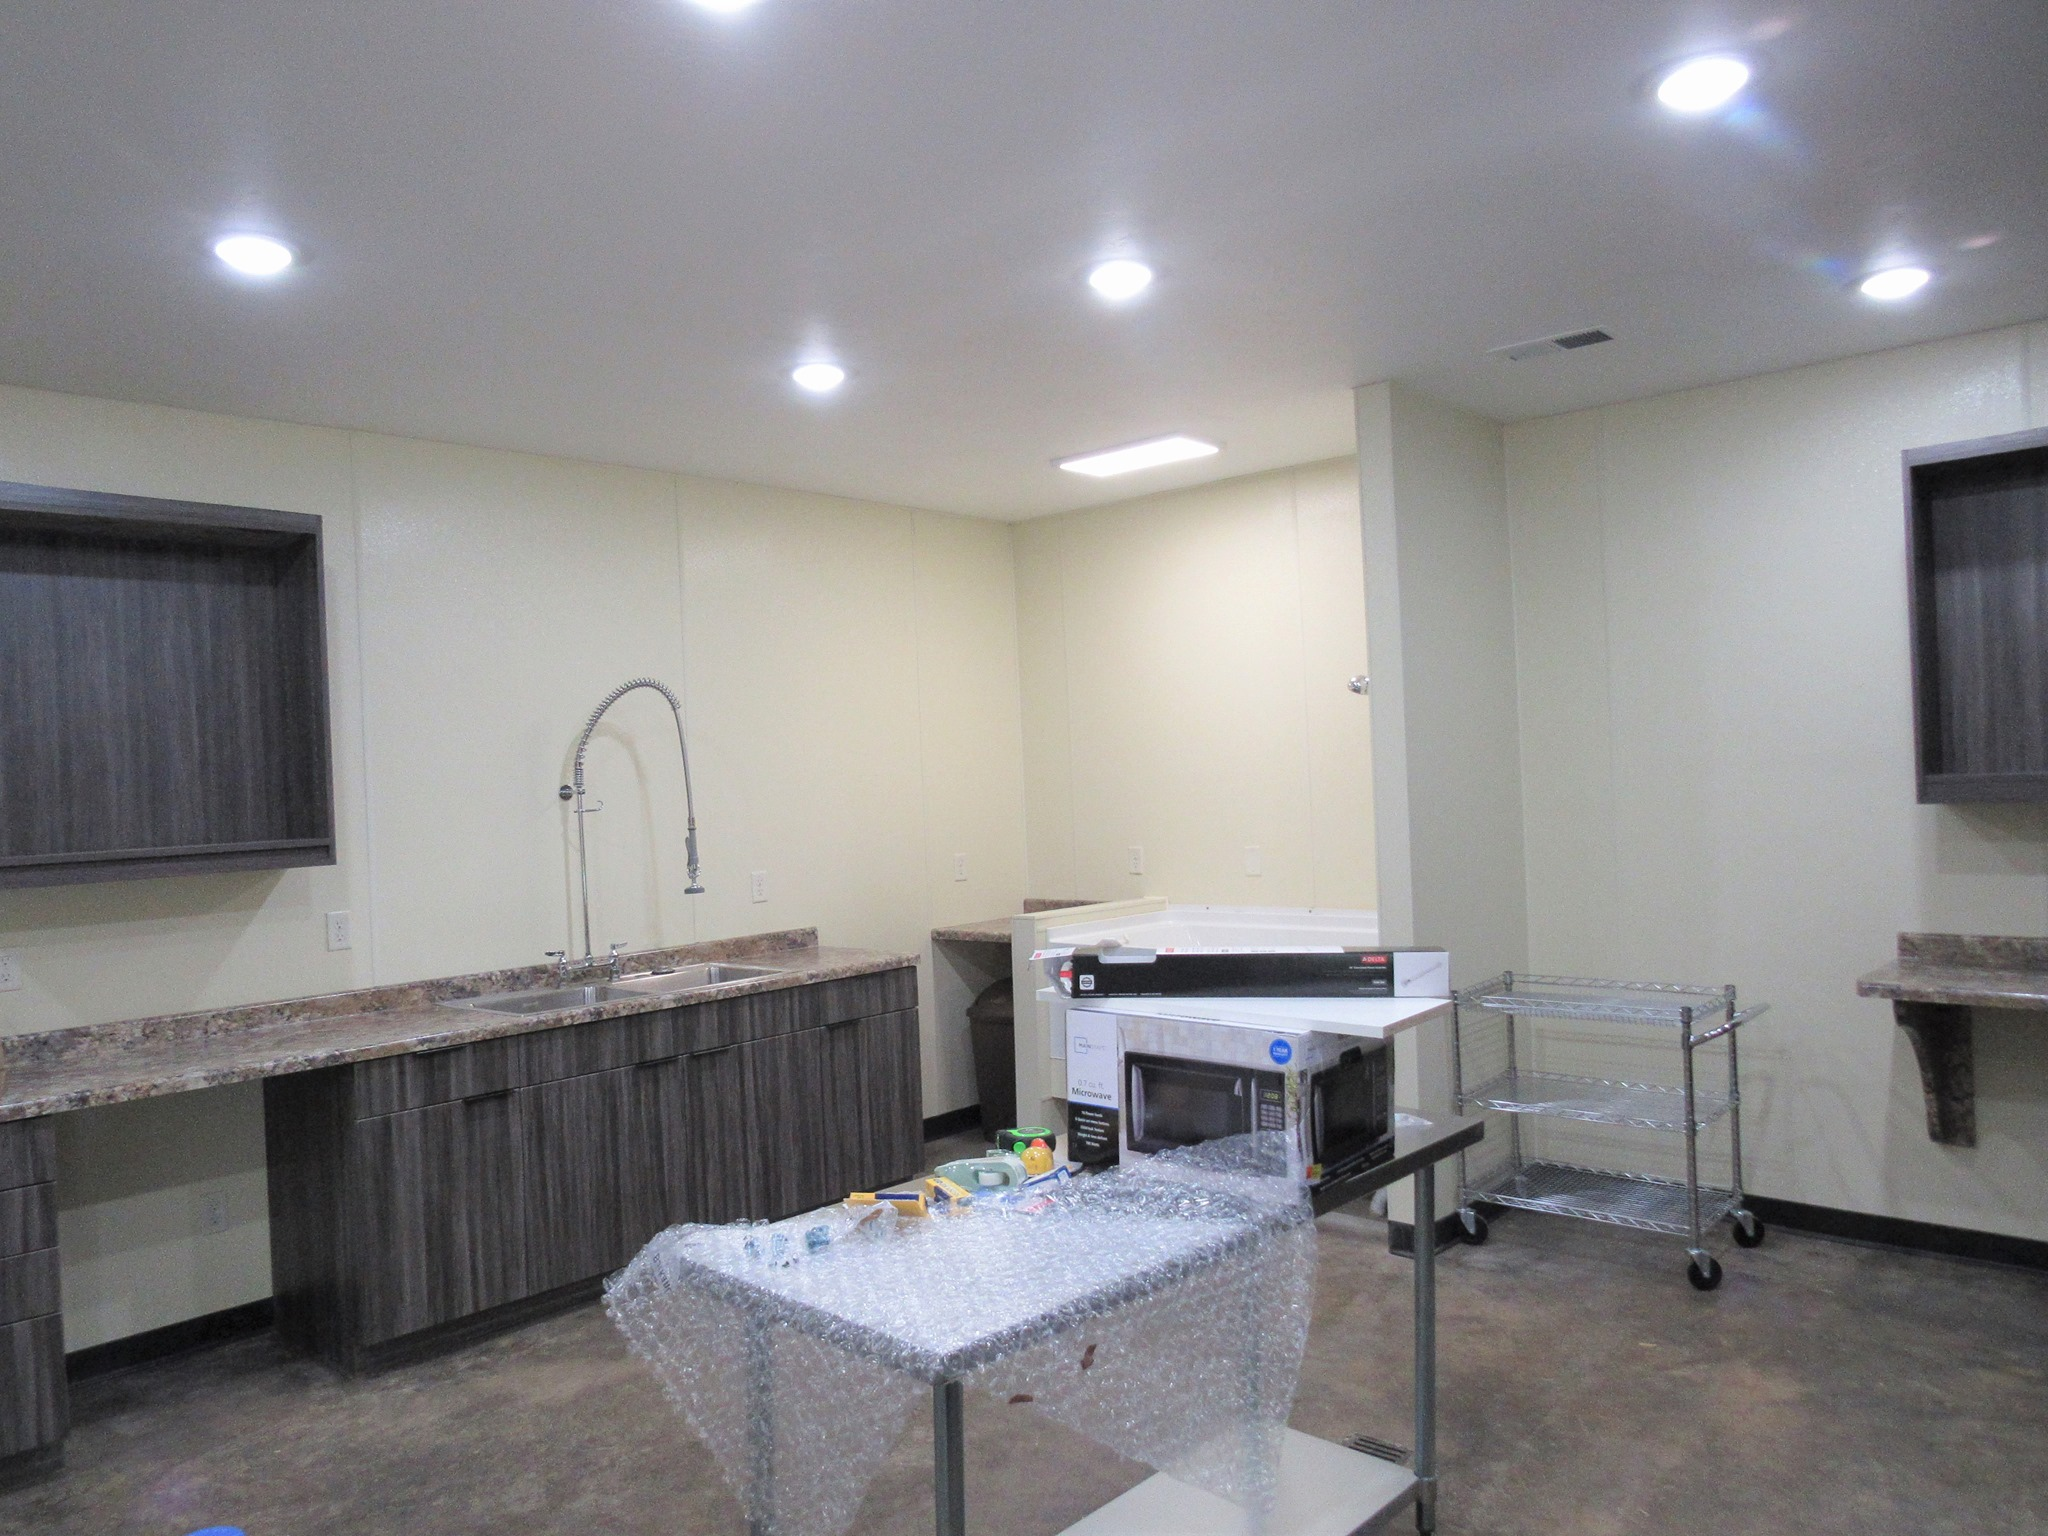 A peek at our new exam room!!! We cannot wait to move in!